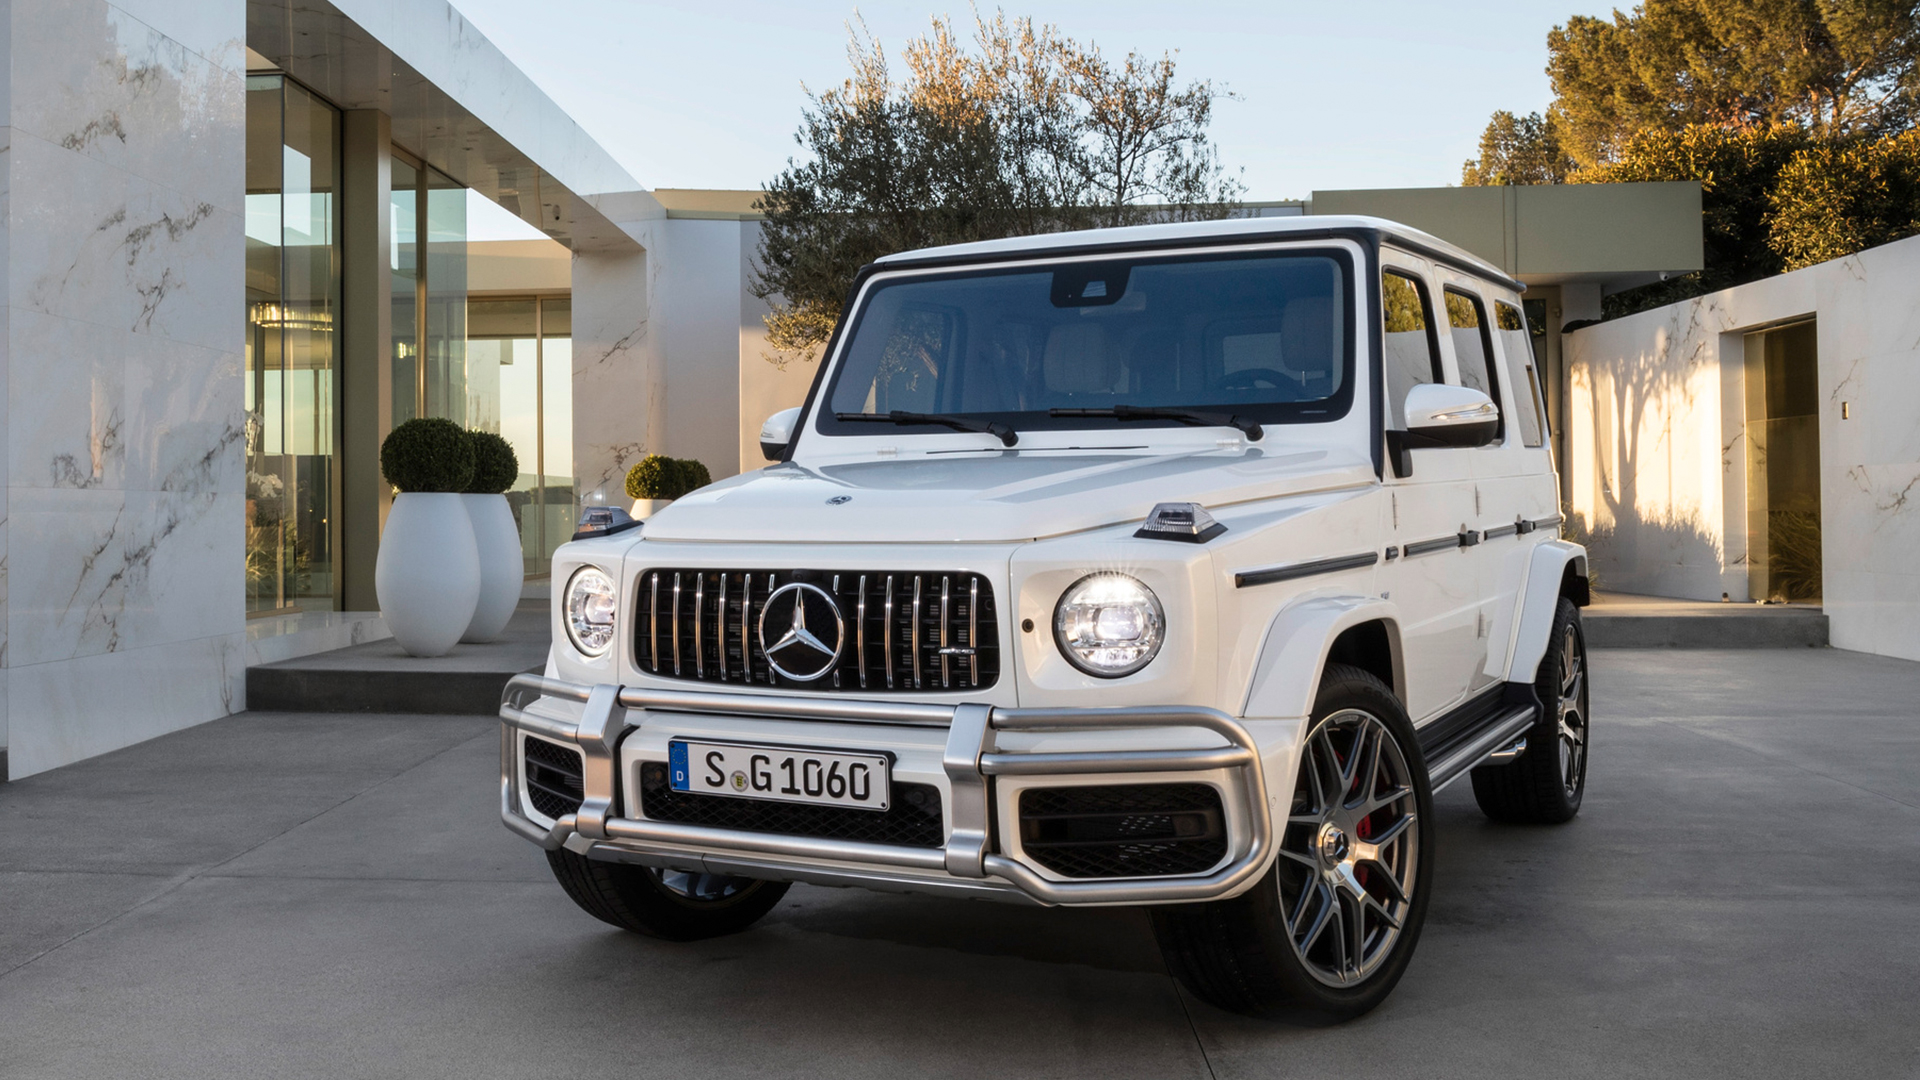 Mercedes Benz G Class 2019 Price Mileage Reviews Specification